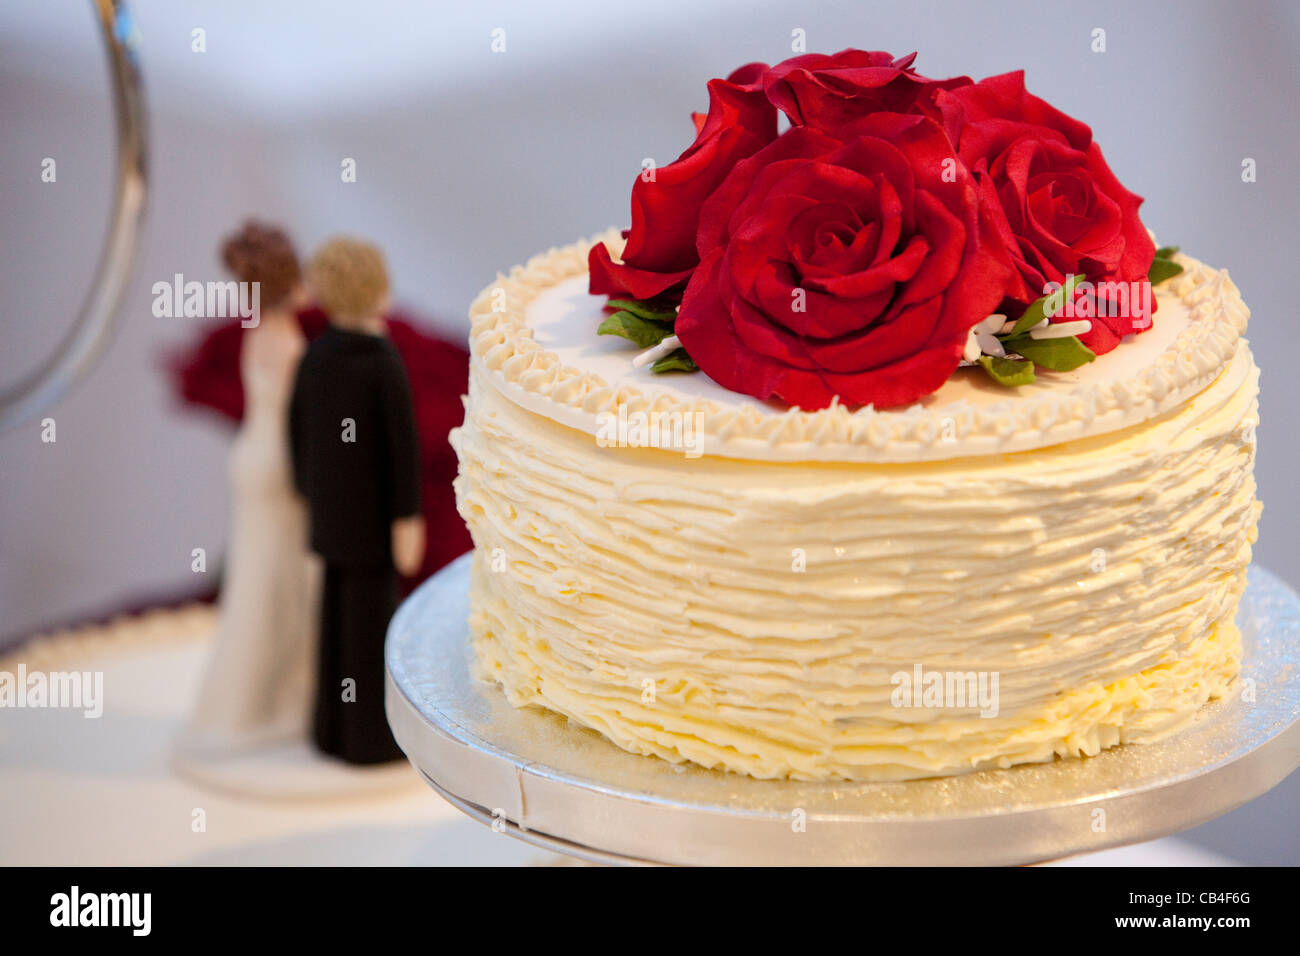 White Wedding Cake With Bride And Groom Figurines Red Roses